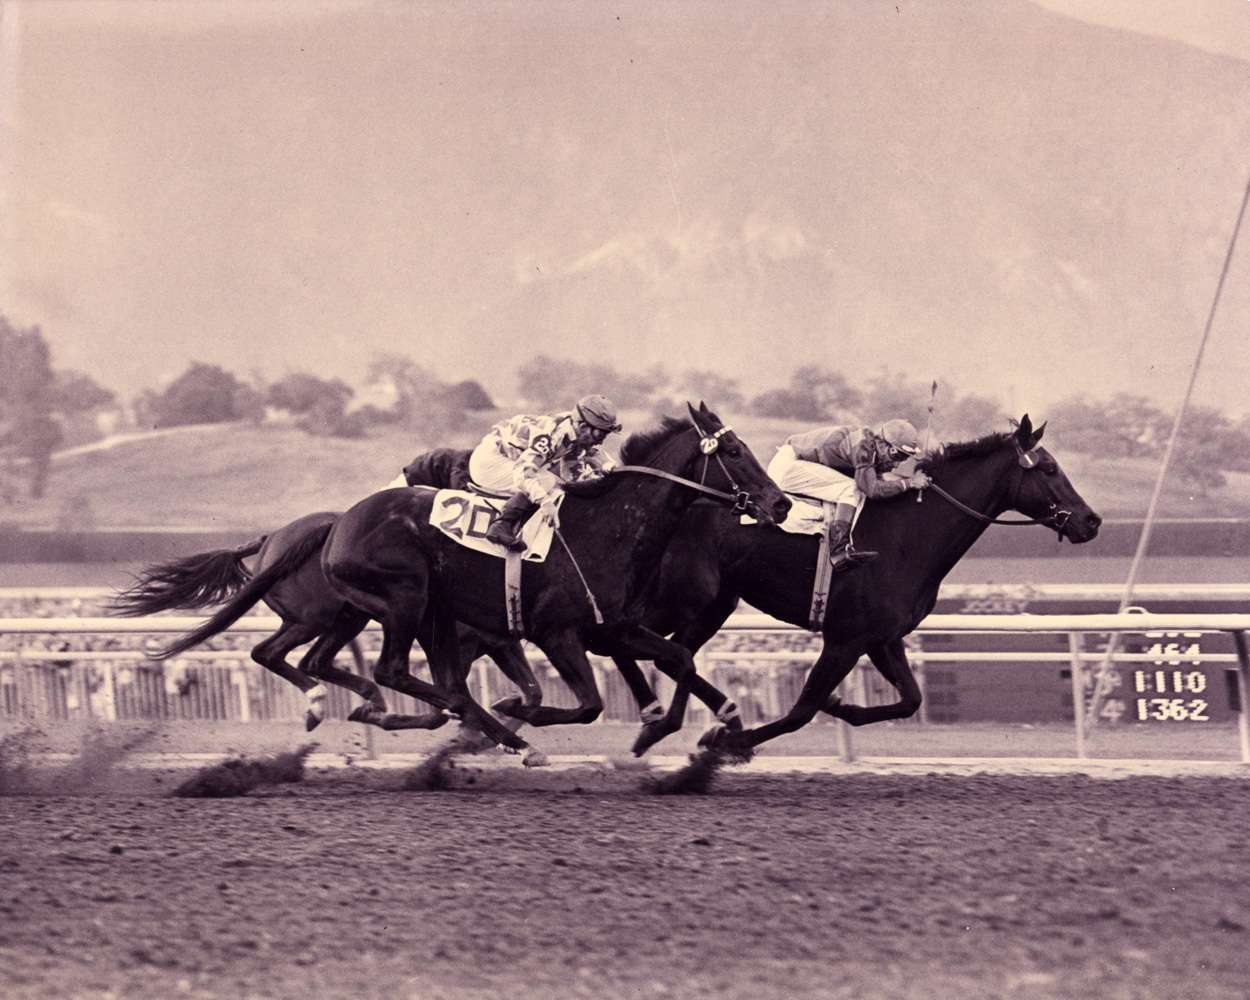 Ralph Neves and Cornhusker winning the 1957 Santa Anita Handicap (Santa Anita Photo/Museum Collection)